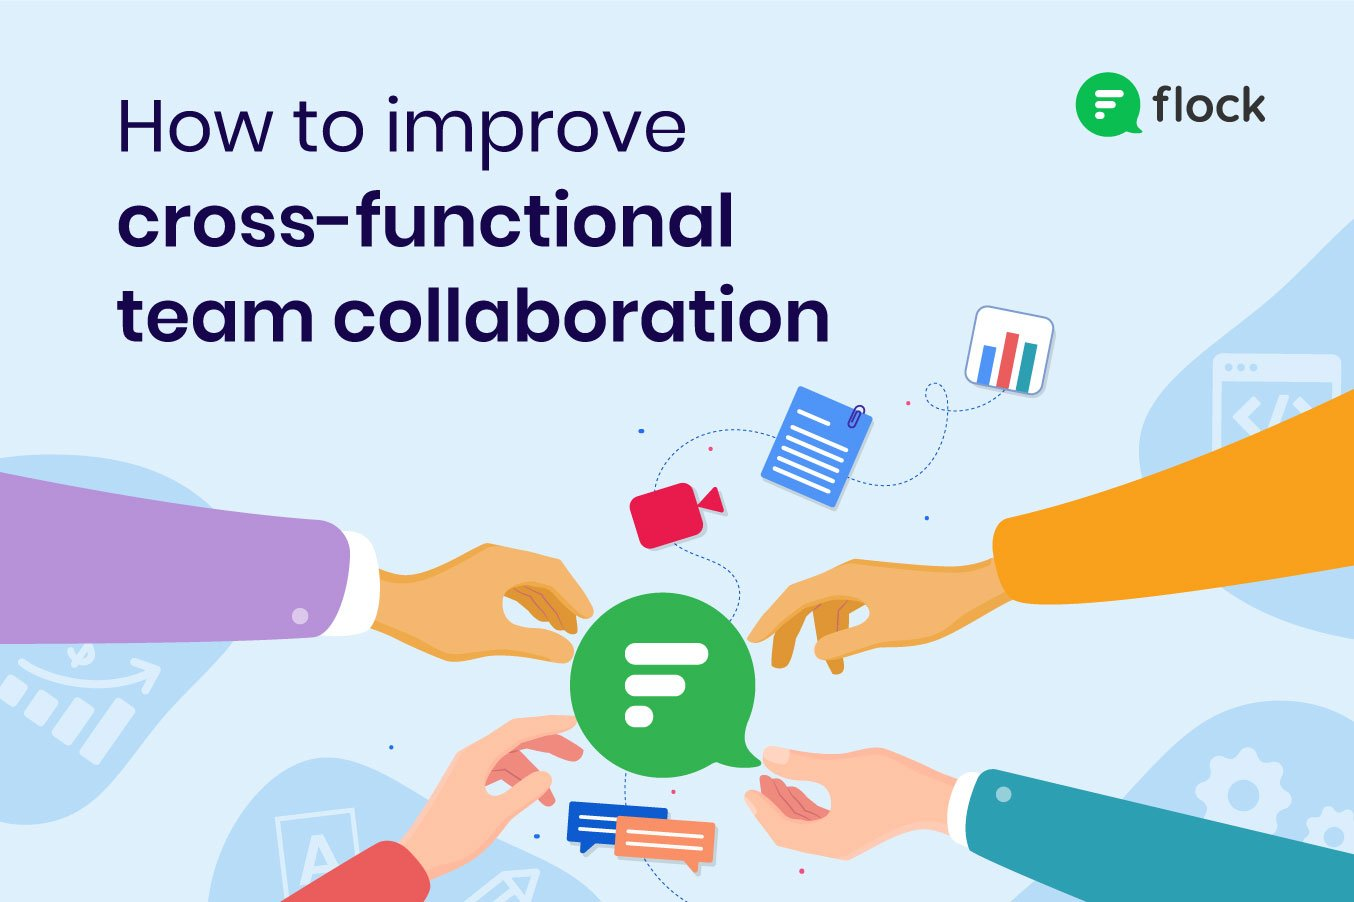 How to improve cross-functional collaboration in your organization